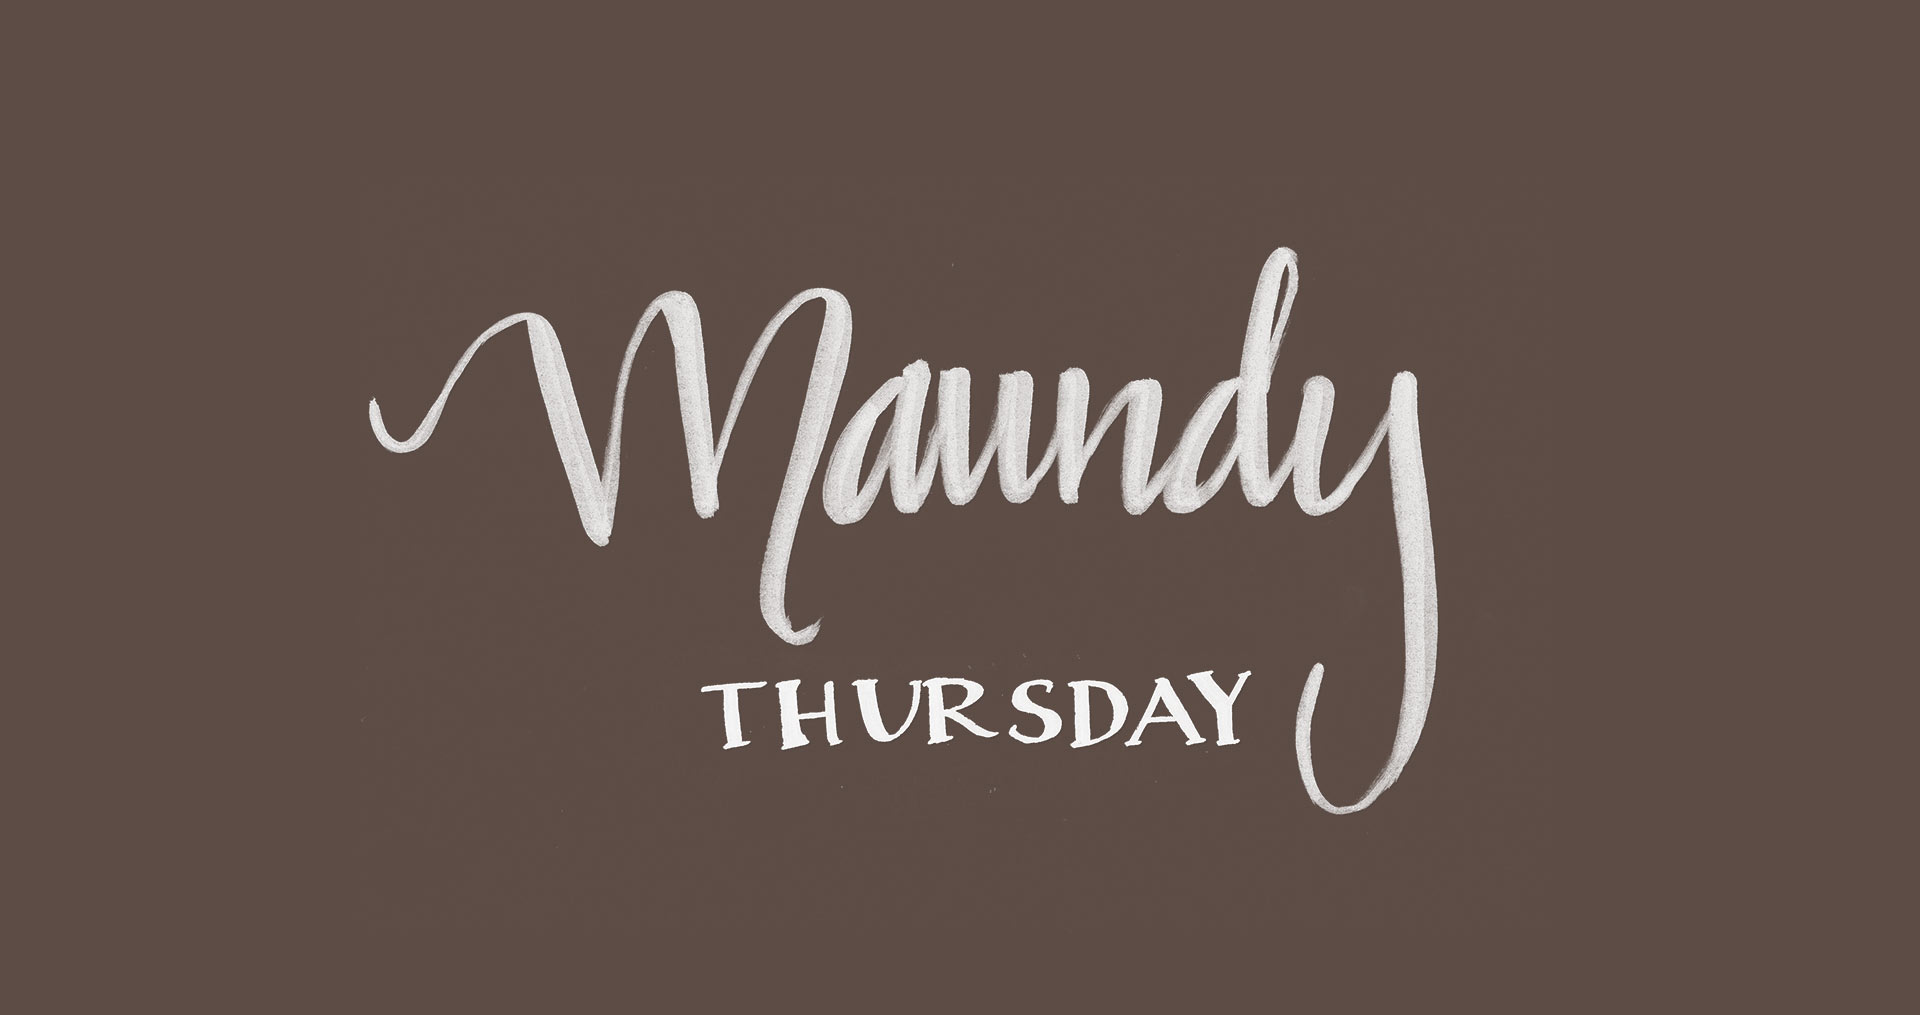 maundy thursday commandments and promises banner